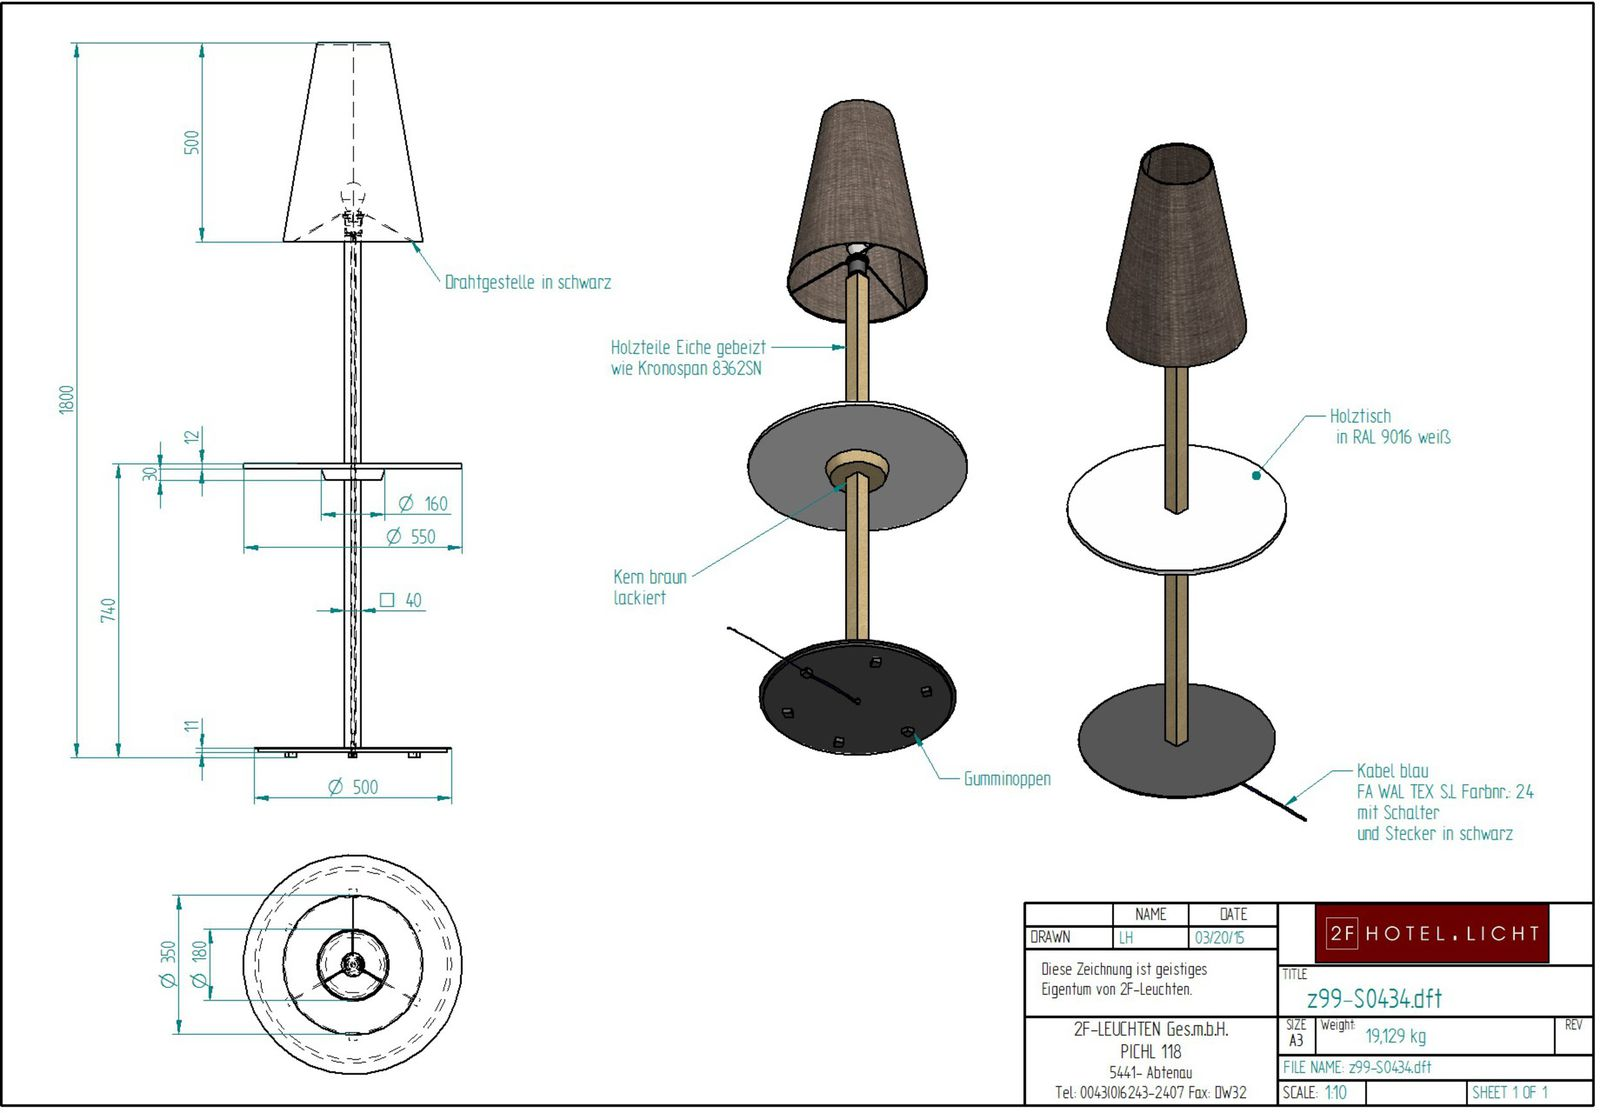 floor lamp with table, L:Ø550mm, H:1800mm, surface: Metal: SWM black, techn. Data: 1xE27, LED 10W 806lm 2700K,